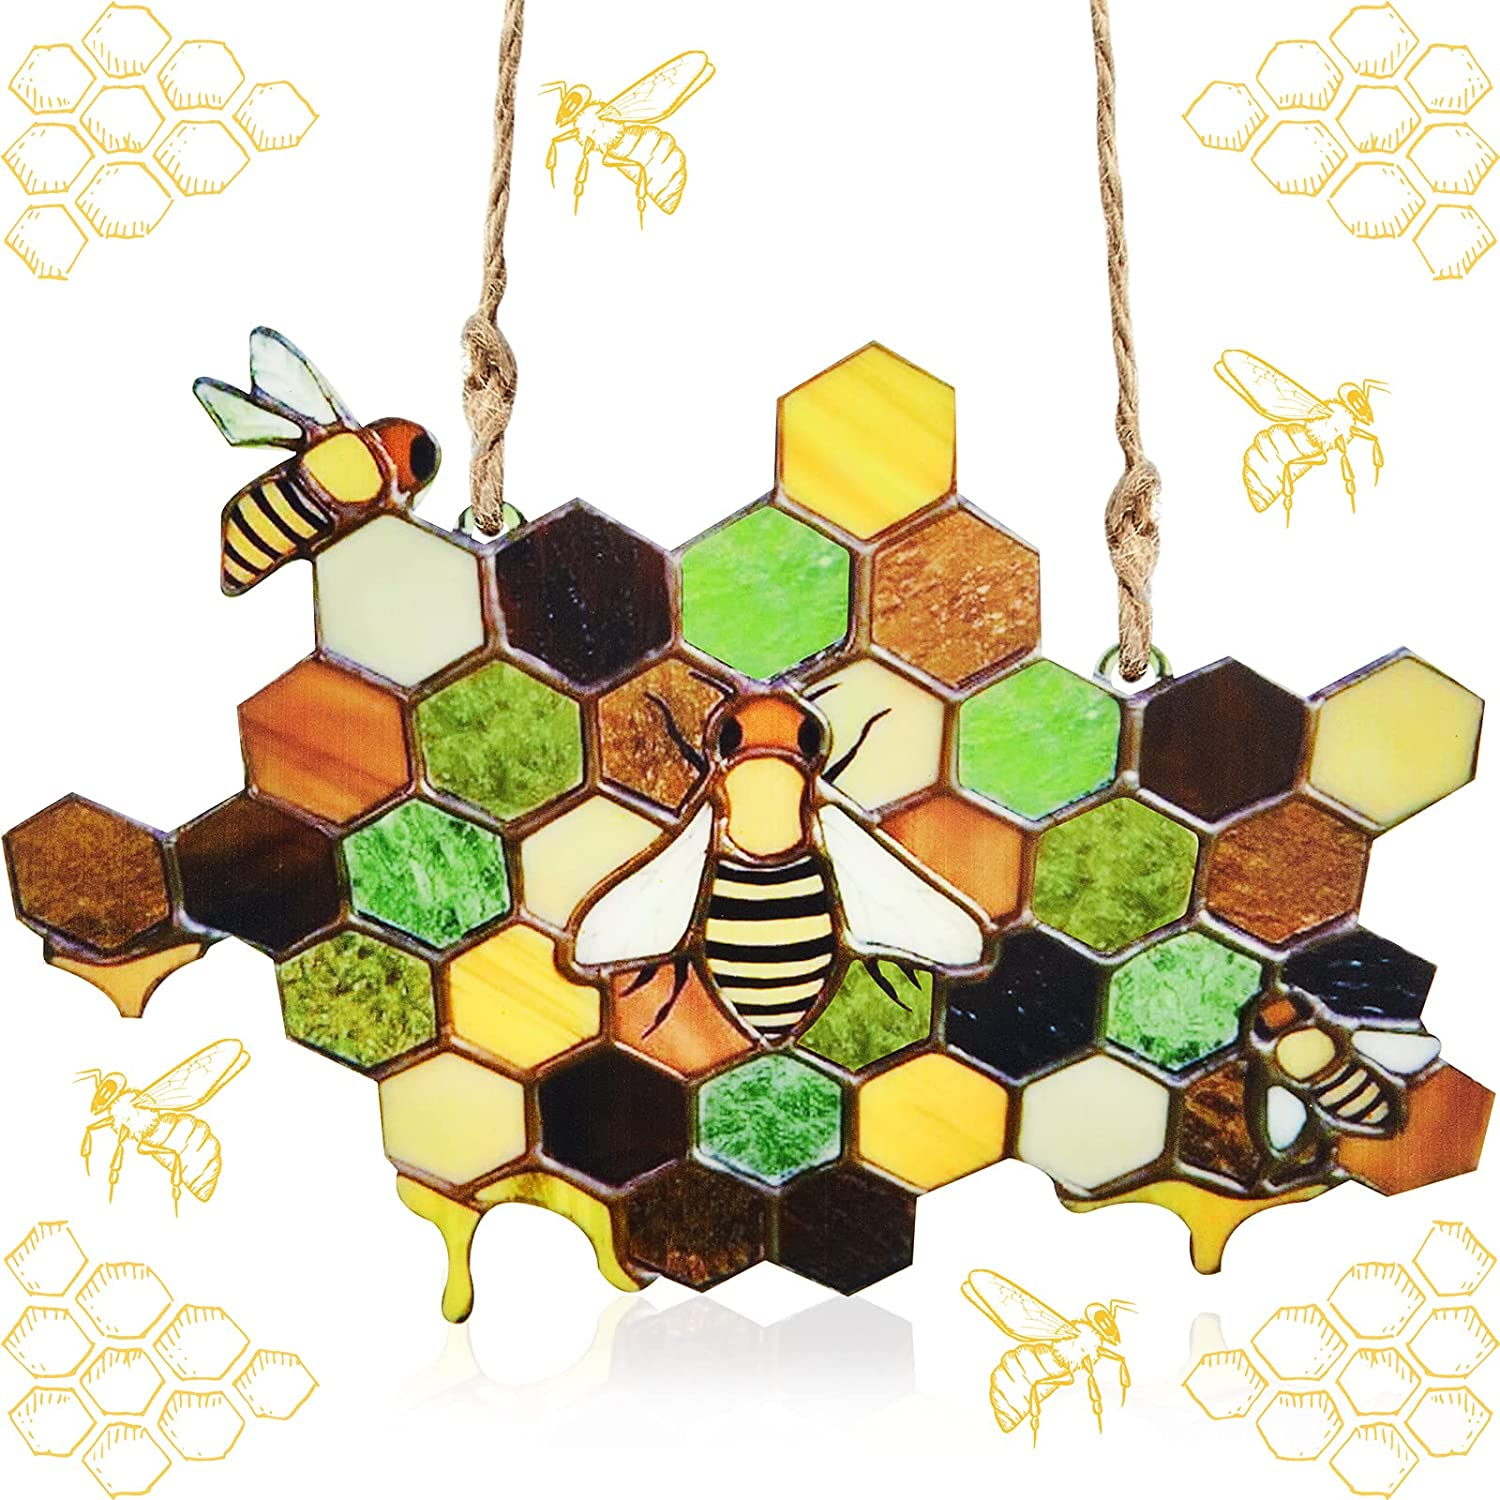 Queen And Bee Protect Honey Suncatcher Bee Honeycomb Suncatcher Stained Acrylic Bee Suncatchers Bee Decor Hanging Ornaments Pendant Handmade Home Decoration for Farmhouse Yard Garden Window Wall Decor